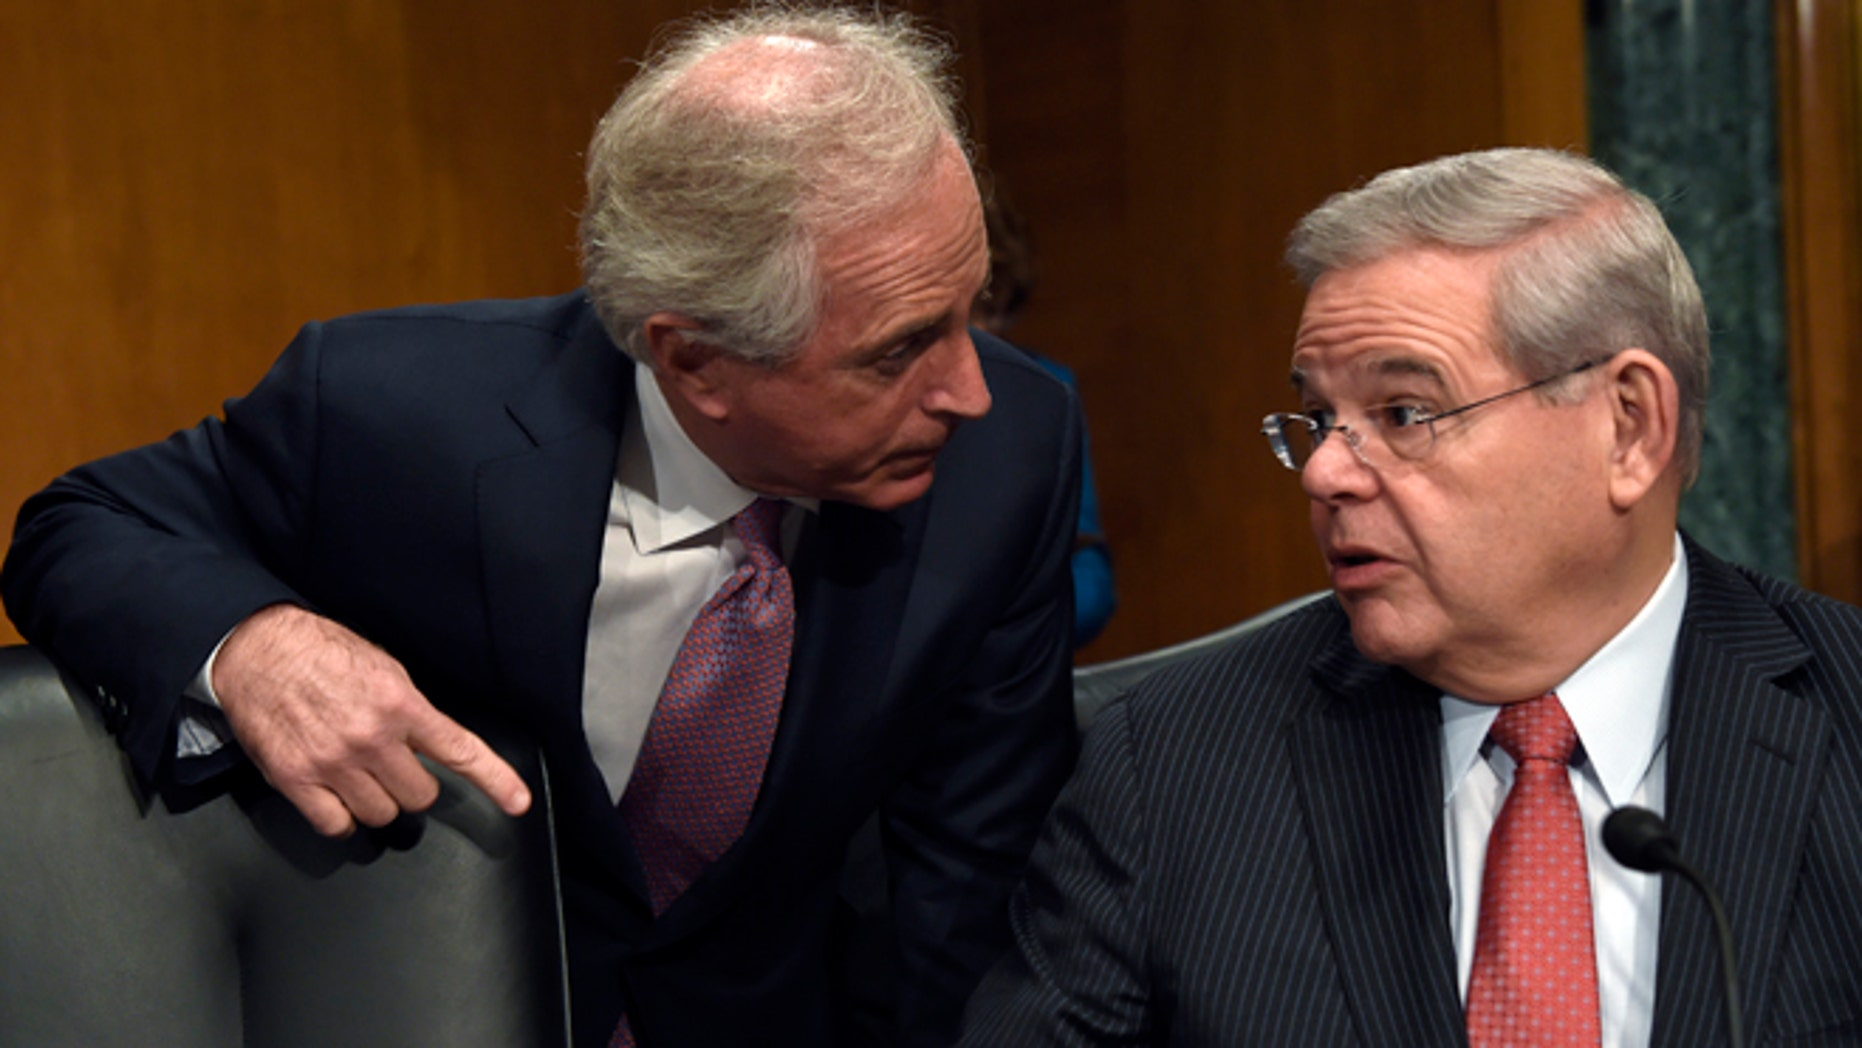 FILE - In this Jan. 27, 2015 file photo, Sen. Robert Menendez, D-N.J., right, and Sen. Bob Corker, R-Tenn. talk on Capitol Hill in Washington. A bipartisan bill in the Senate would set up a nonprofit foundation to help eliminate forced labor and sexual servitude around the world. The Senate Foreign Relations Committee is to vote Thursday on the bill introduced by chairman Sen. Bob Corker, R-Tenn., and Robert Menendez, D-N.J., the ranking Democrat on the committee.  (AP Photo/Susan Walsh, File)